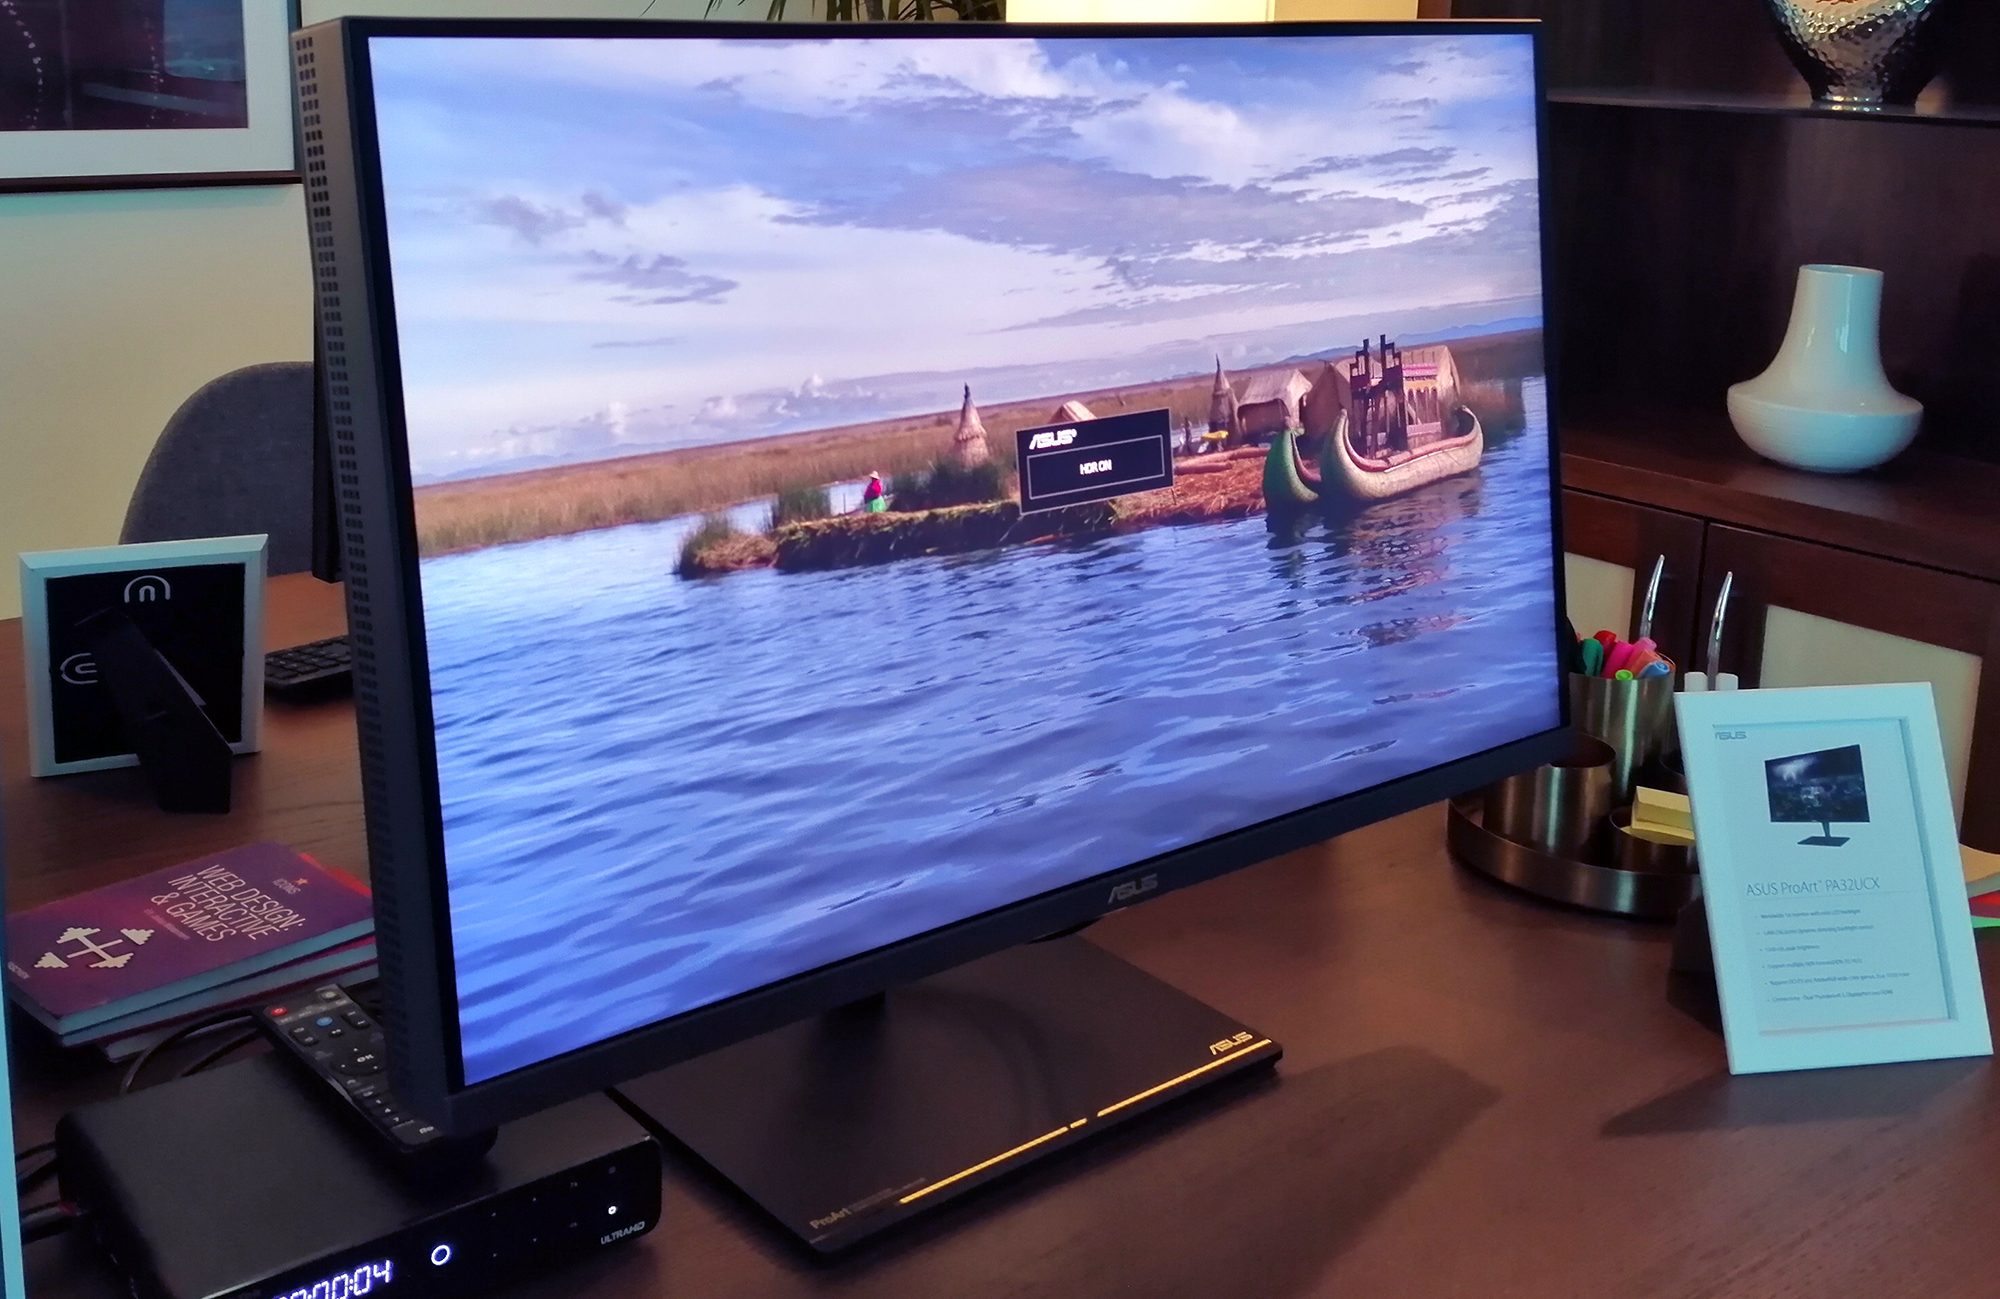 ASUS at CES 2019: ProArt PA32UCX 4K Monitor with 1000-Zone FALD Unveiled